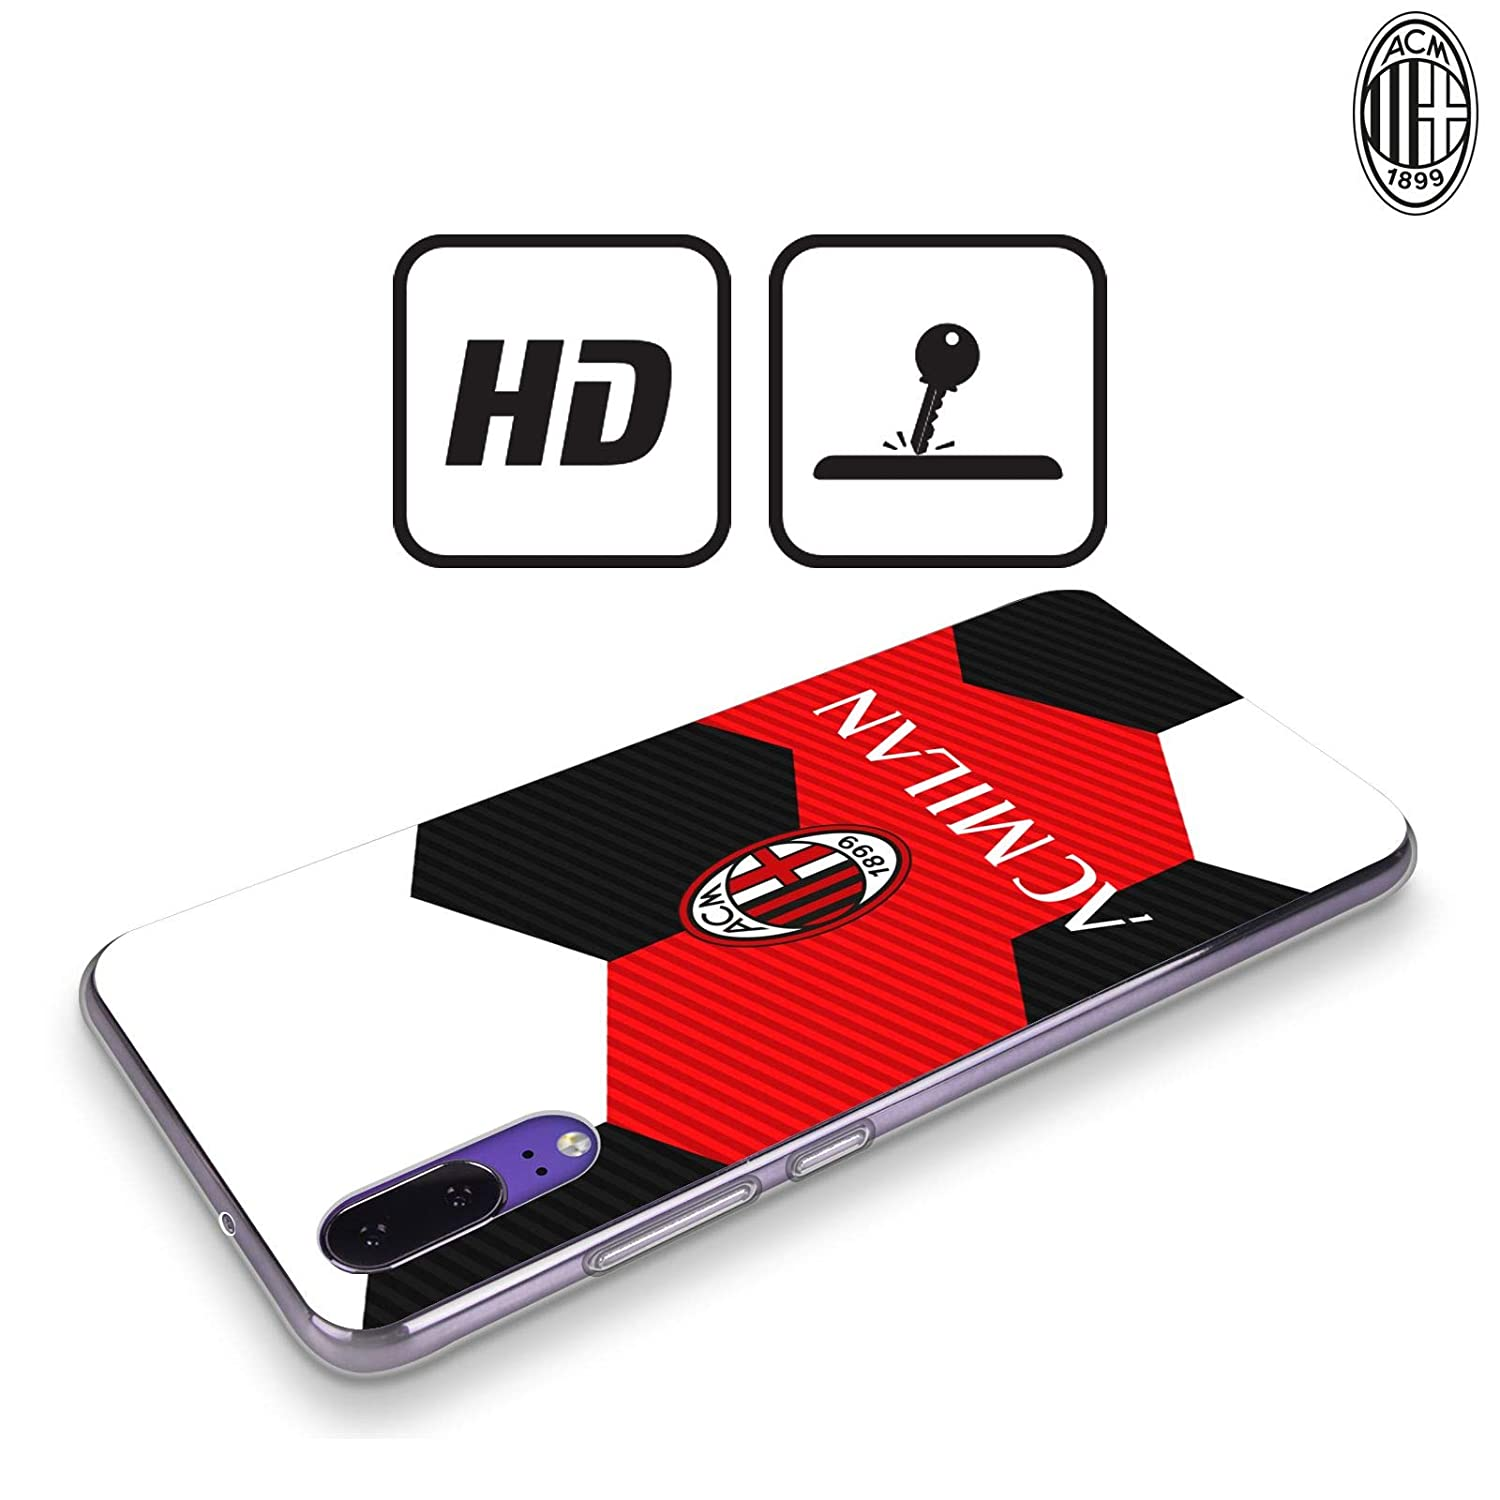 Amazon.com: Official AC Milan Ball 2018/19 Crest Soft Gel ...